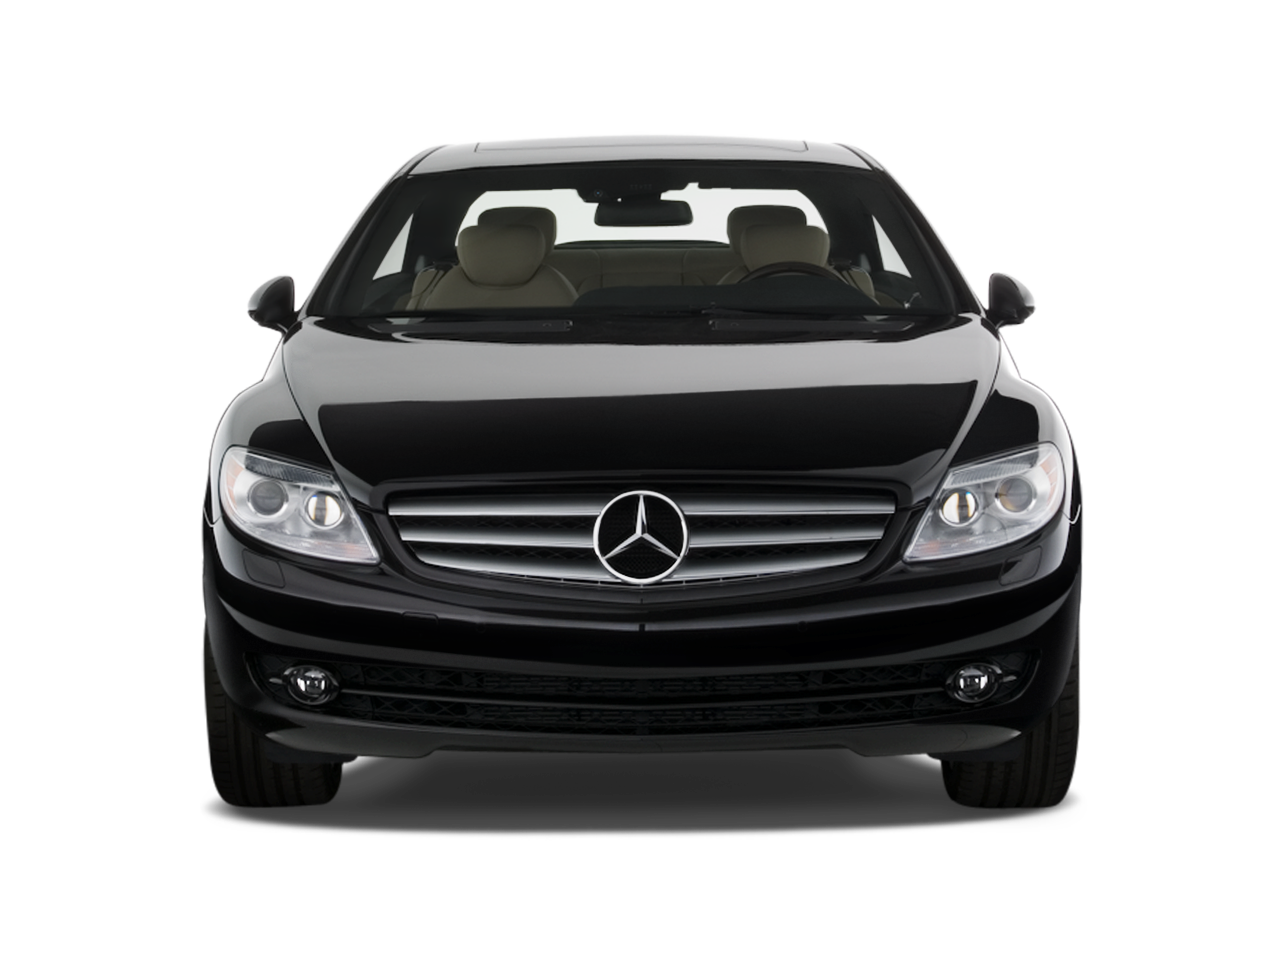 2009 mercedes cl550 4matic latest news features and for 2009 mercedes benz cl550